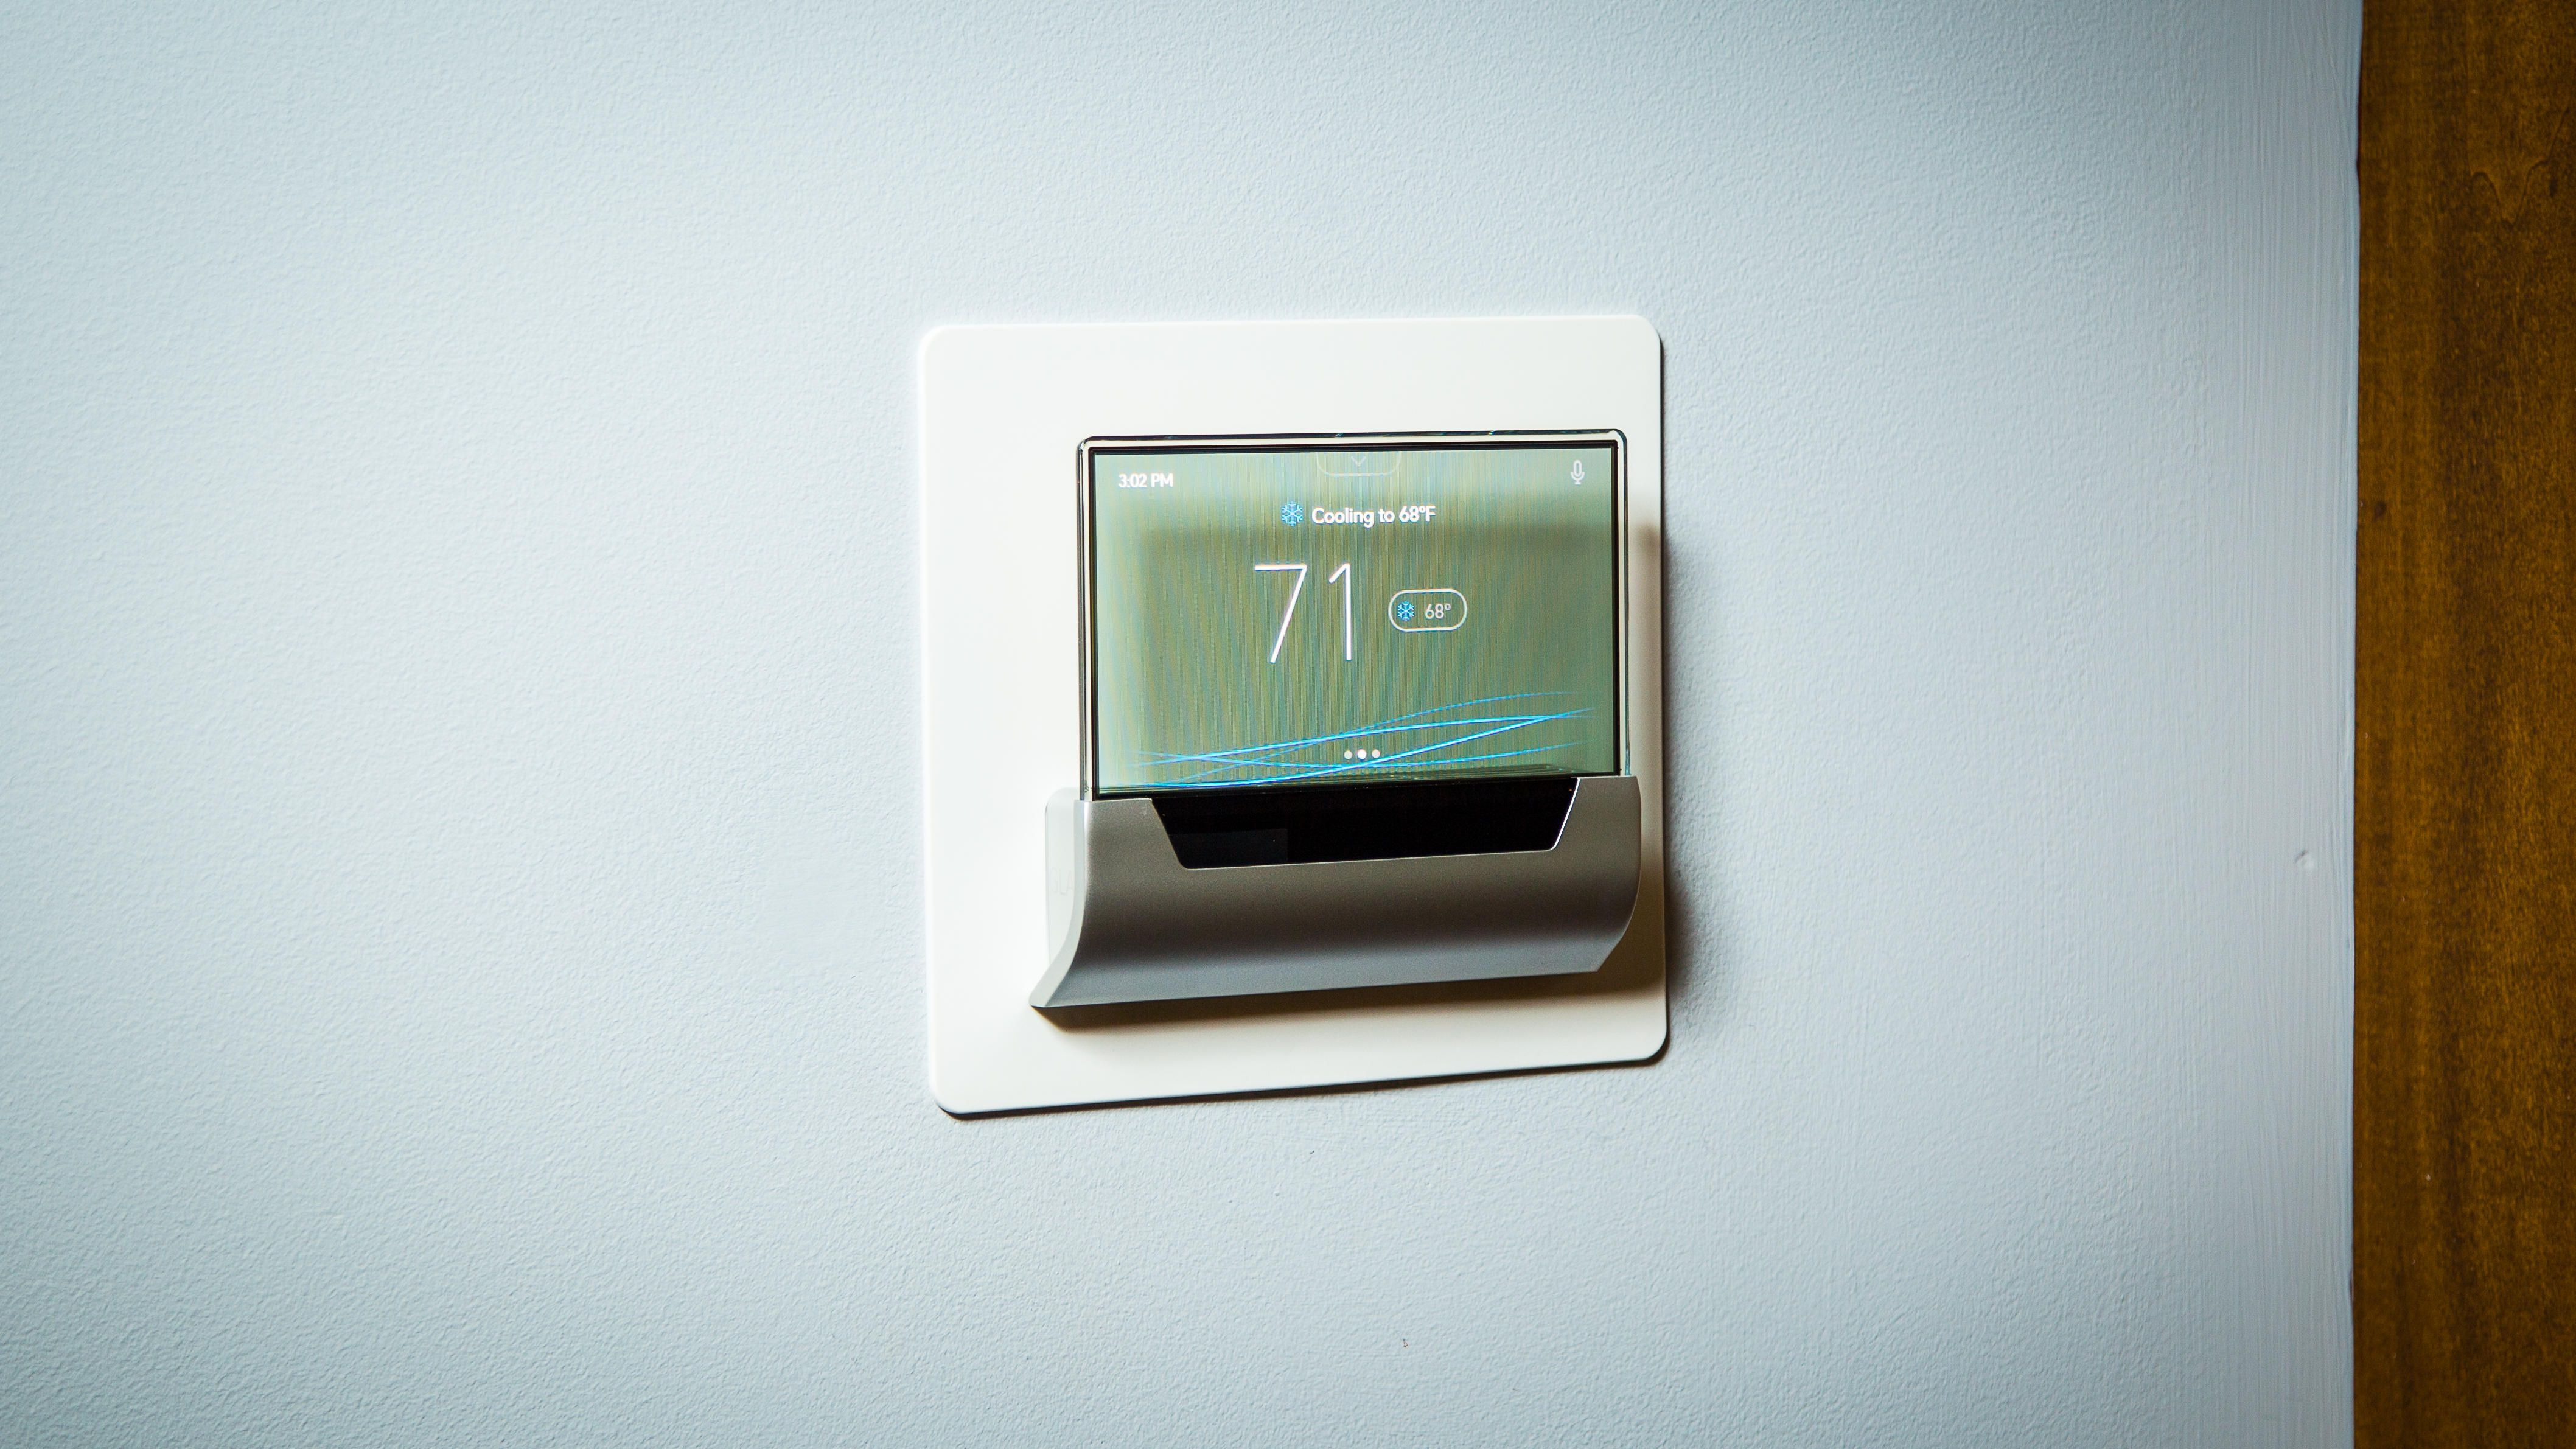 Costly seethrough Cortana thermostat is neat, but not for